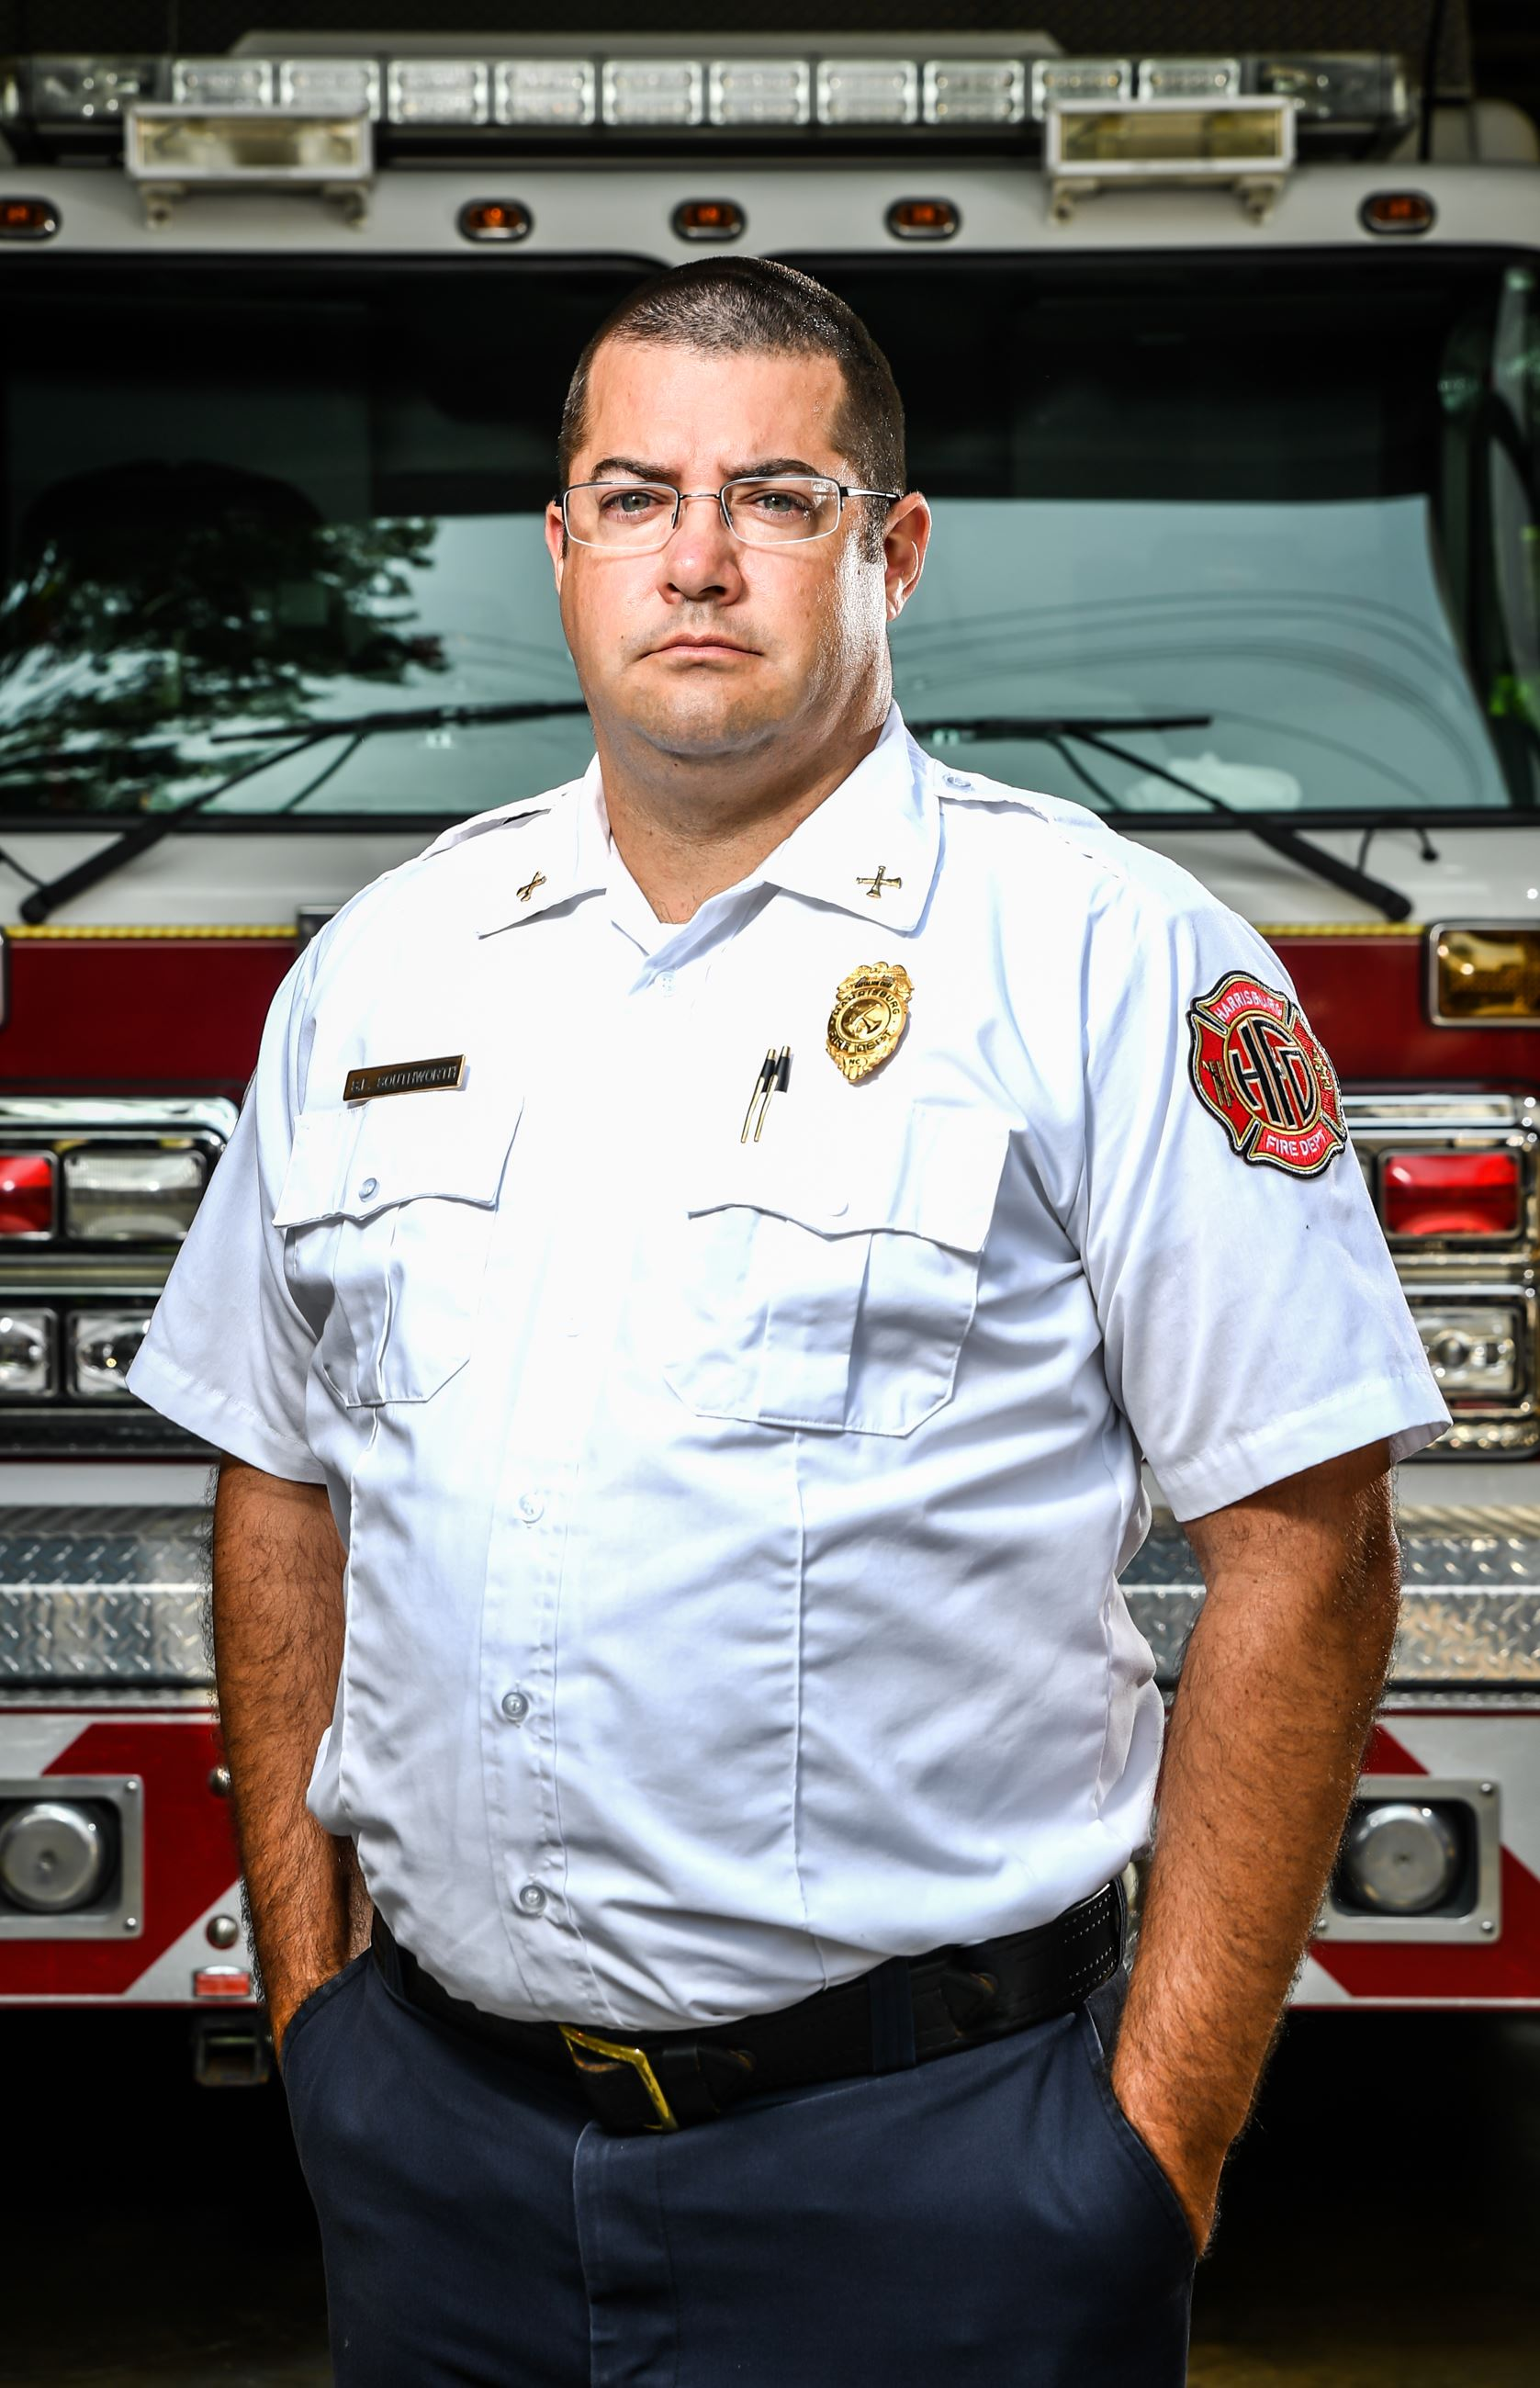 battalion chief steven southworth